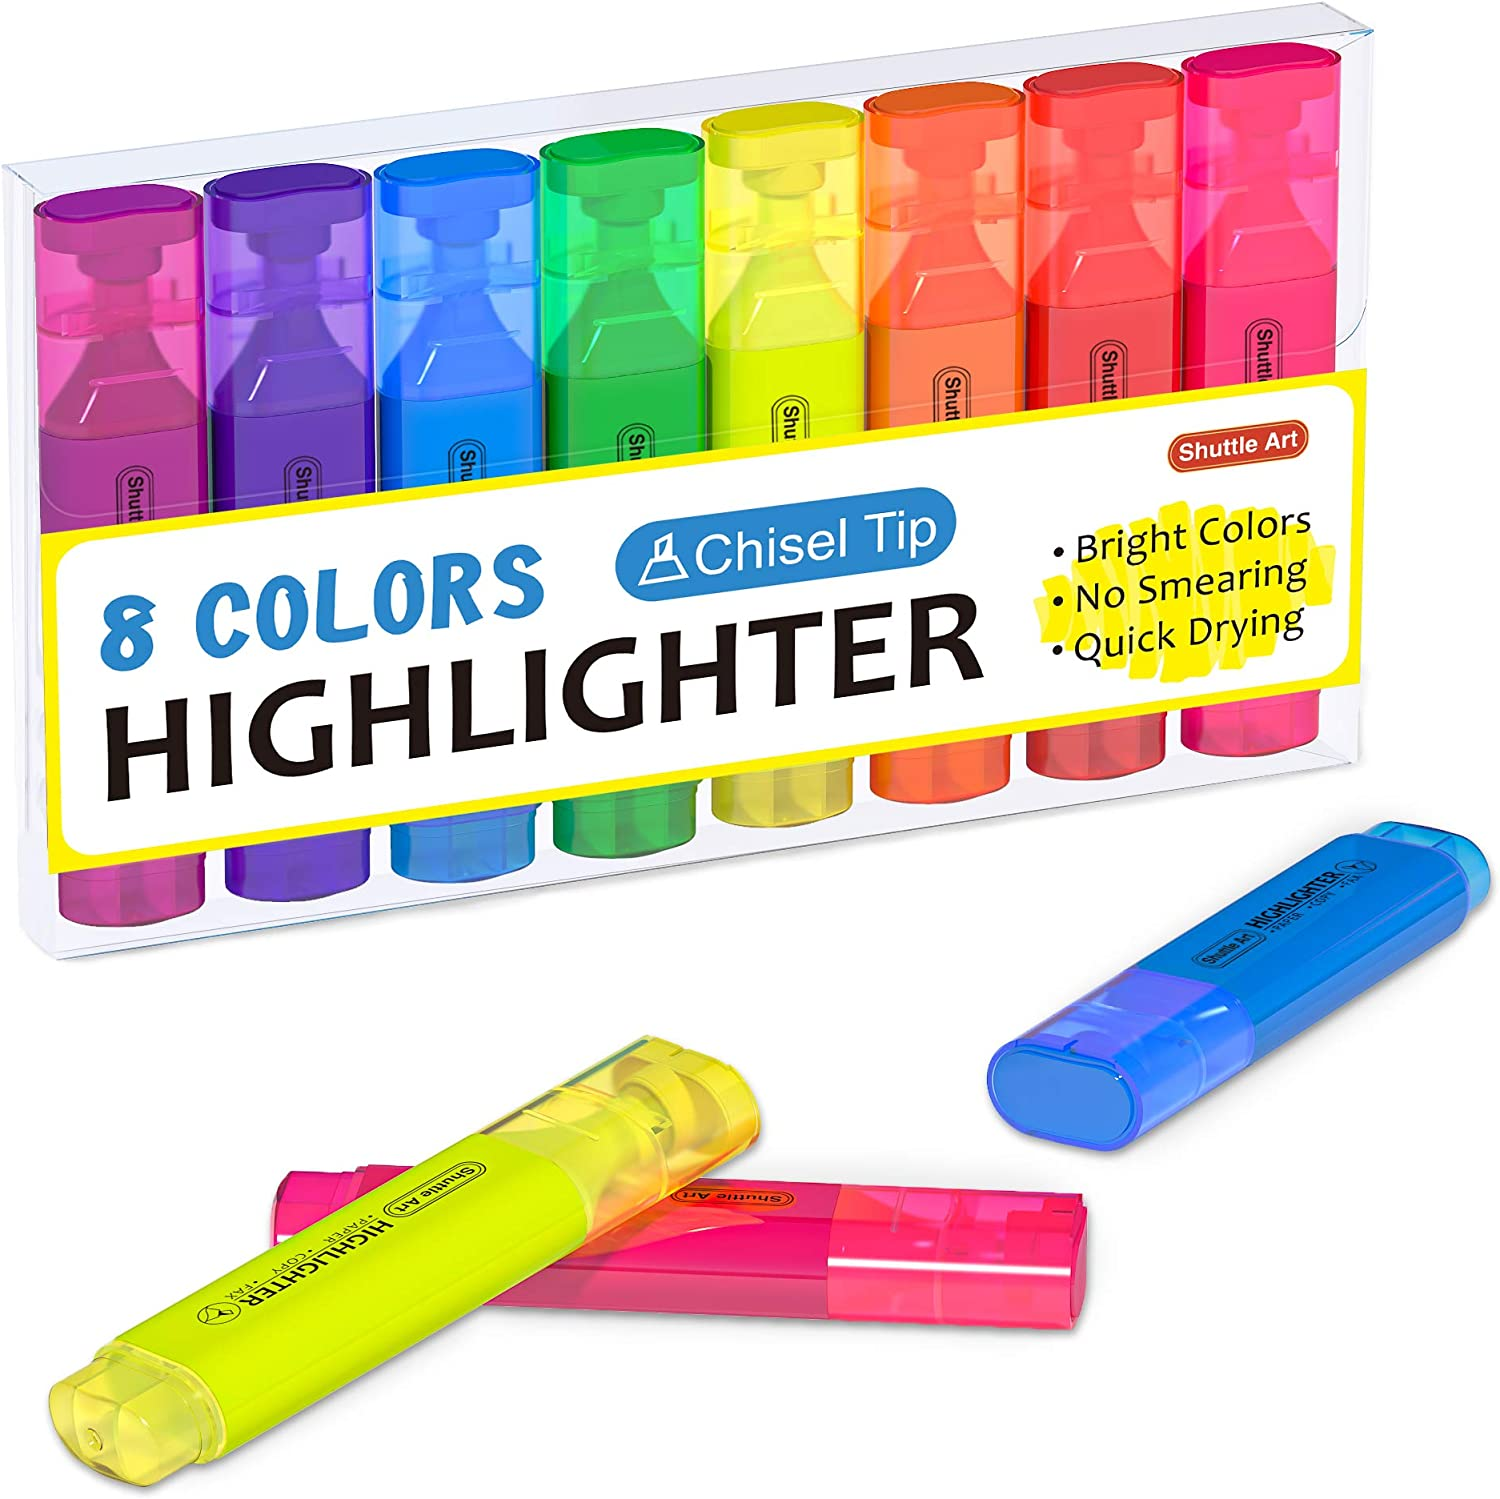 Highlighters, Shuttle Art 8 Assorted Colors Highlighter Pens, Chisel Tip Dry-Quickly Non-Toxic Highlighter Markers for Adults Kids Highlighting in the Home School Office : Office Products